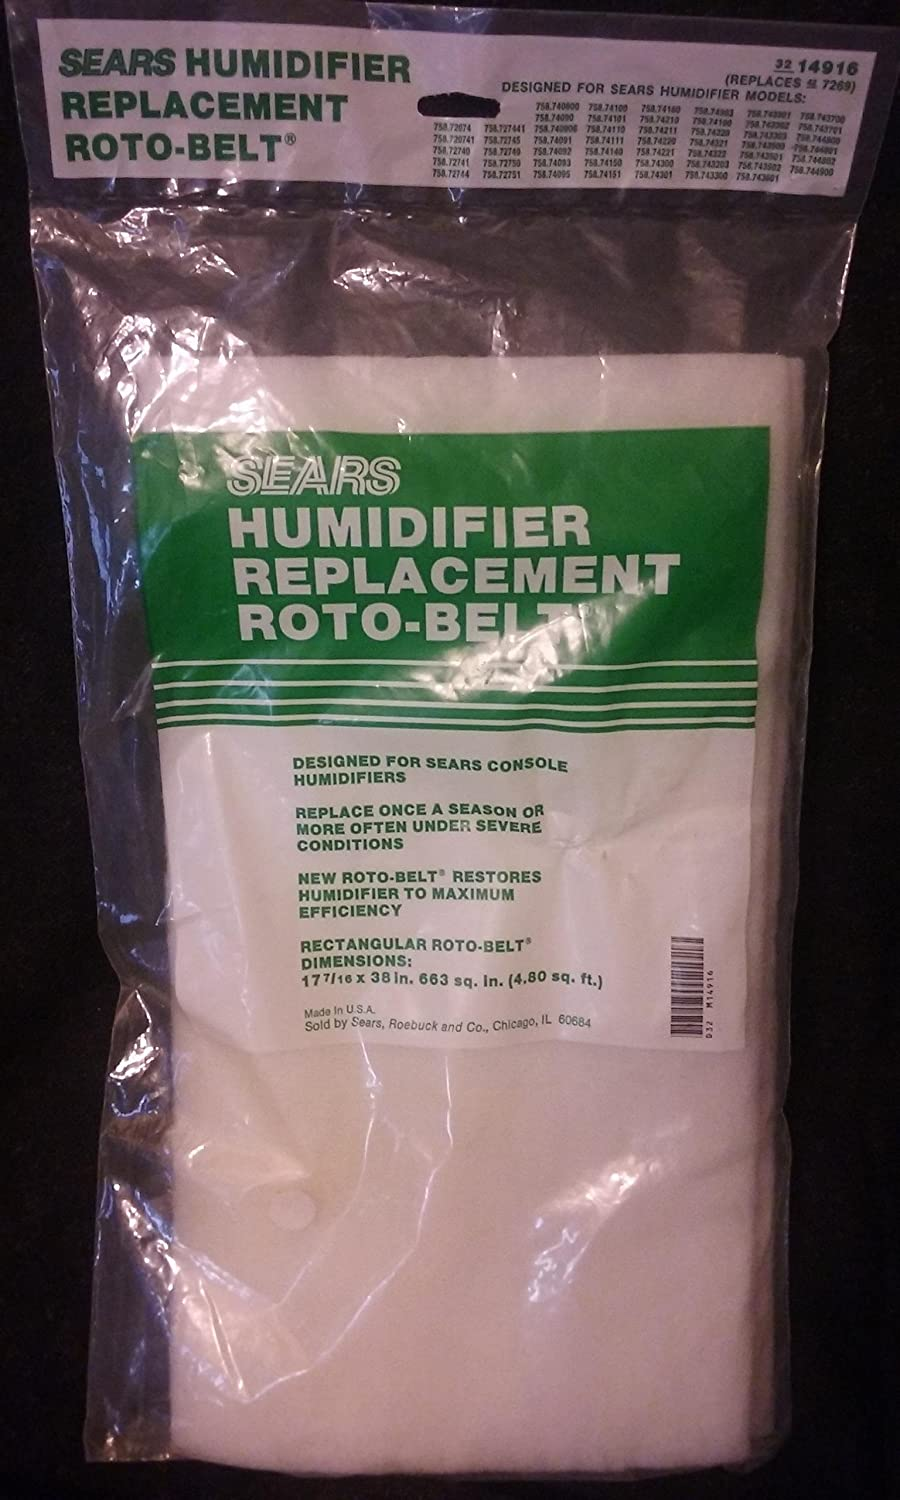 Humidifier Belt 14916 - what is a humidifier